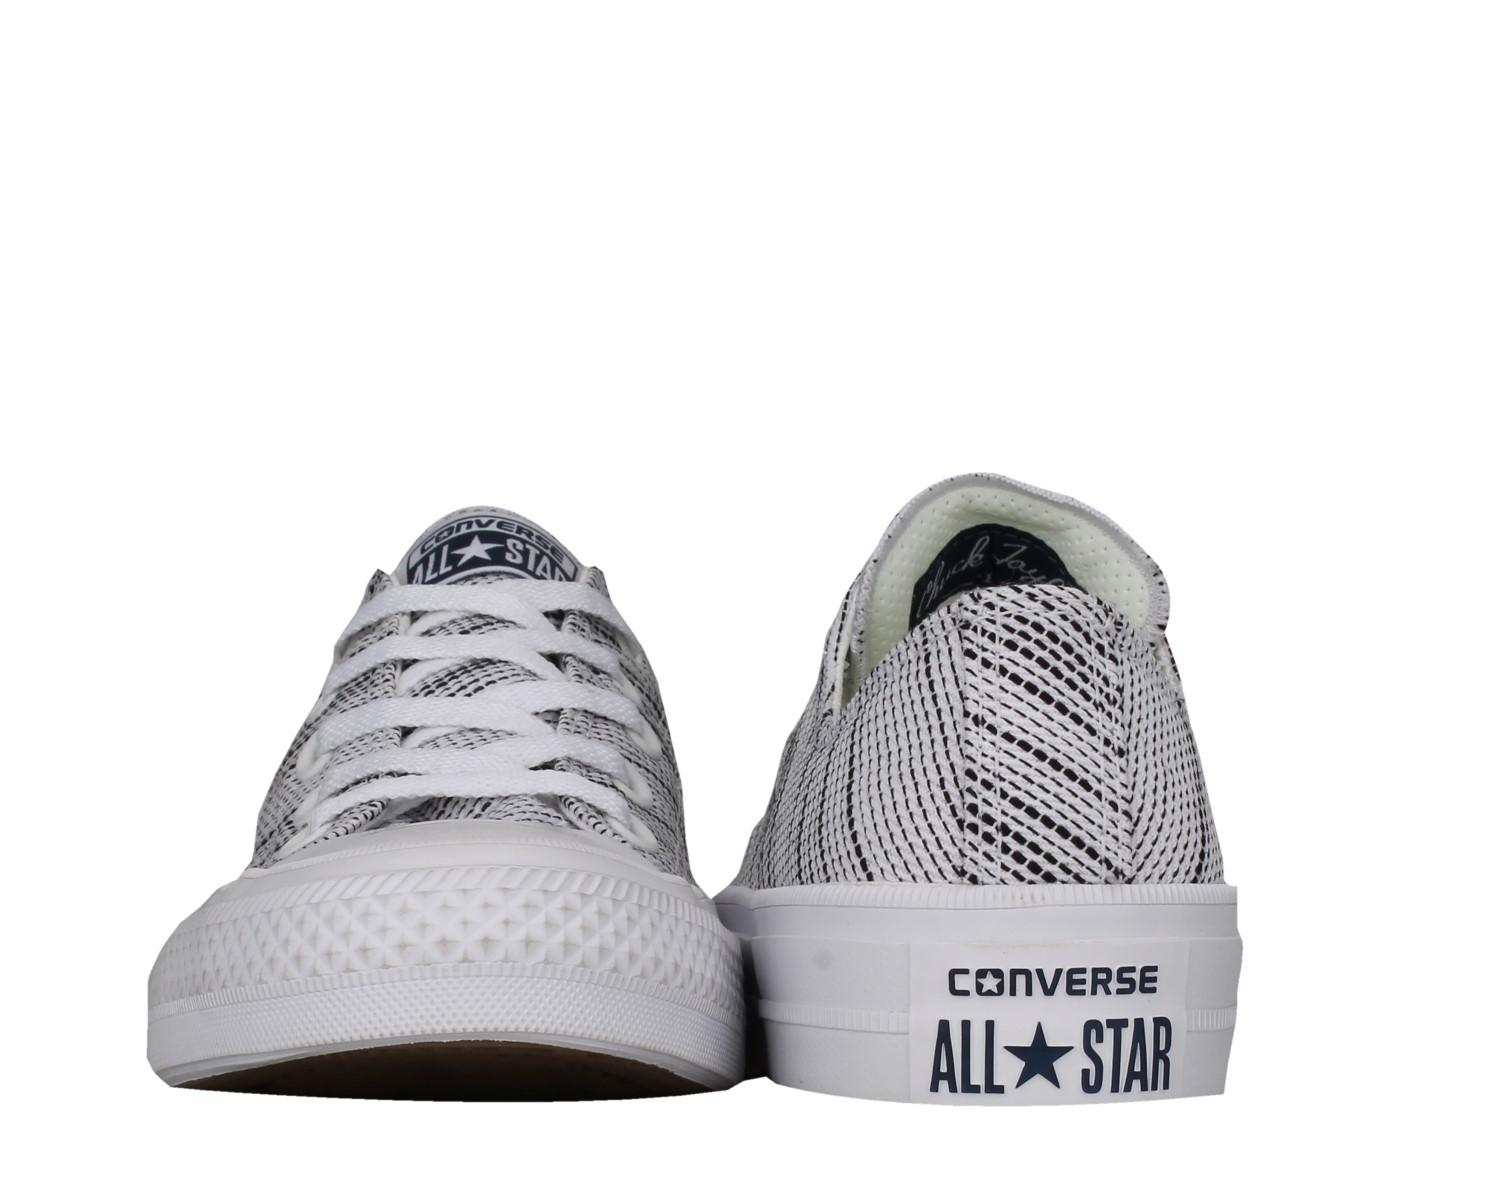 93112264dacb Lyst - Converse Chuck Taylor All Star Ii Low Top Shoes 151089c in ...